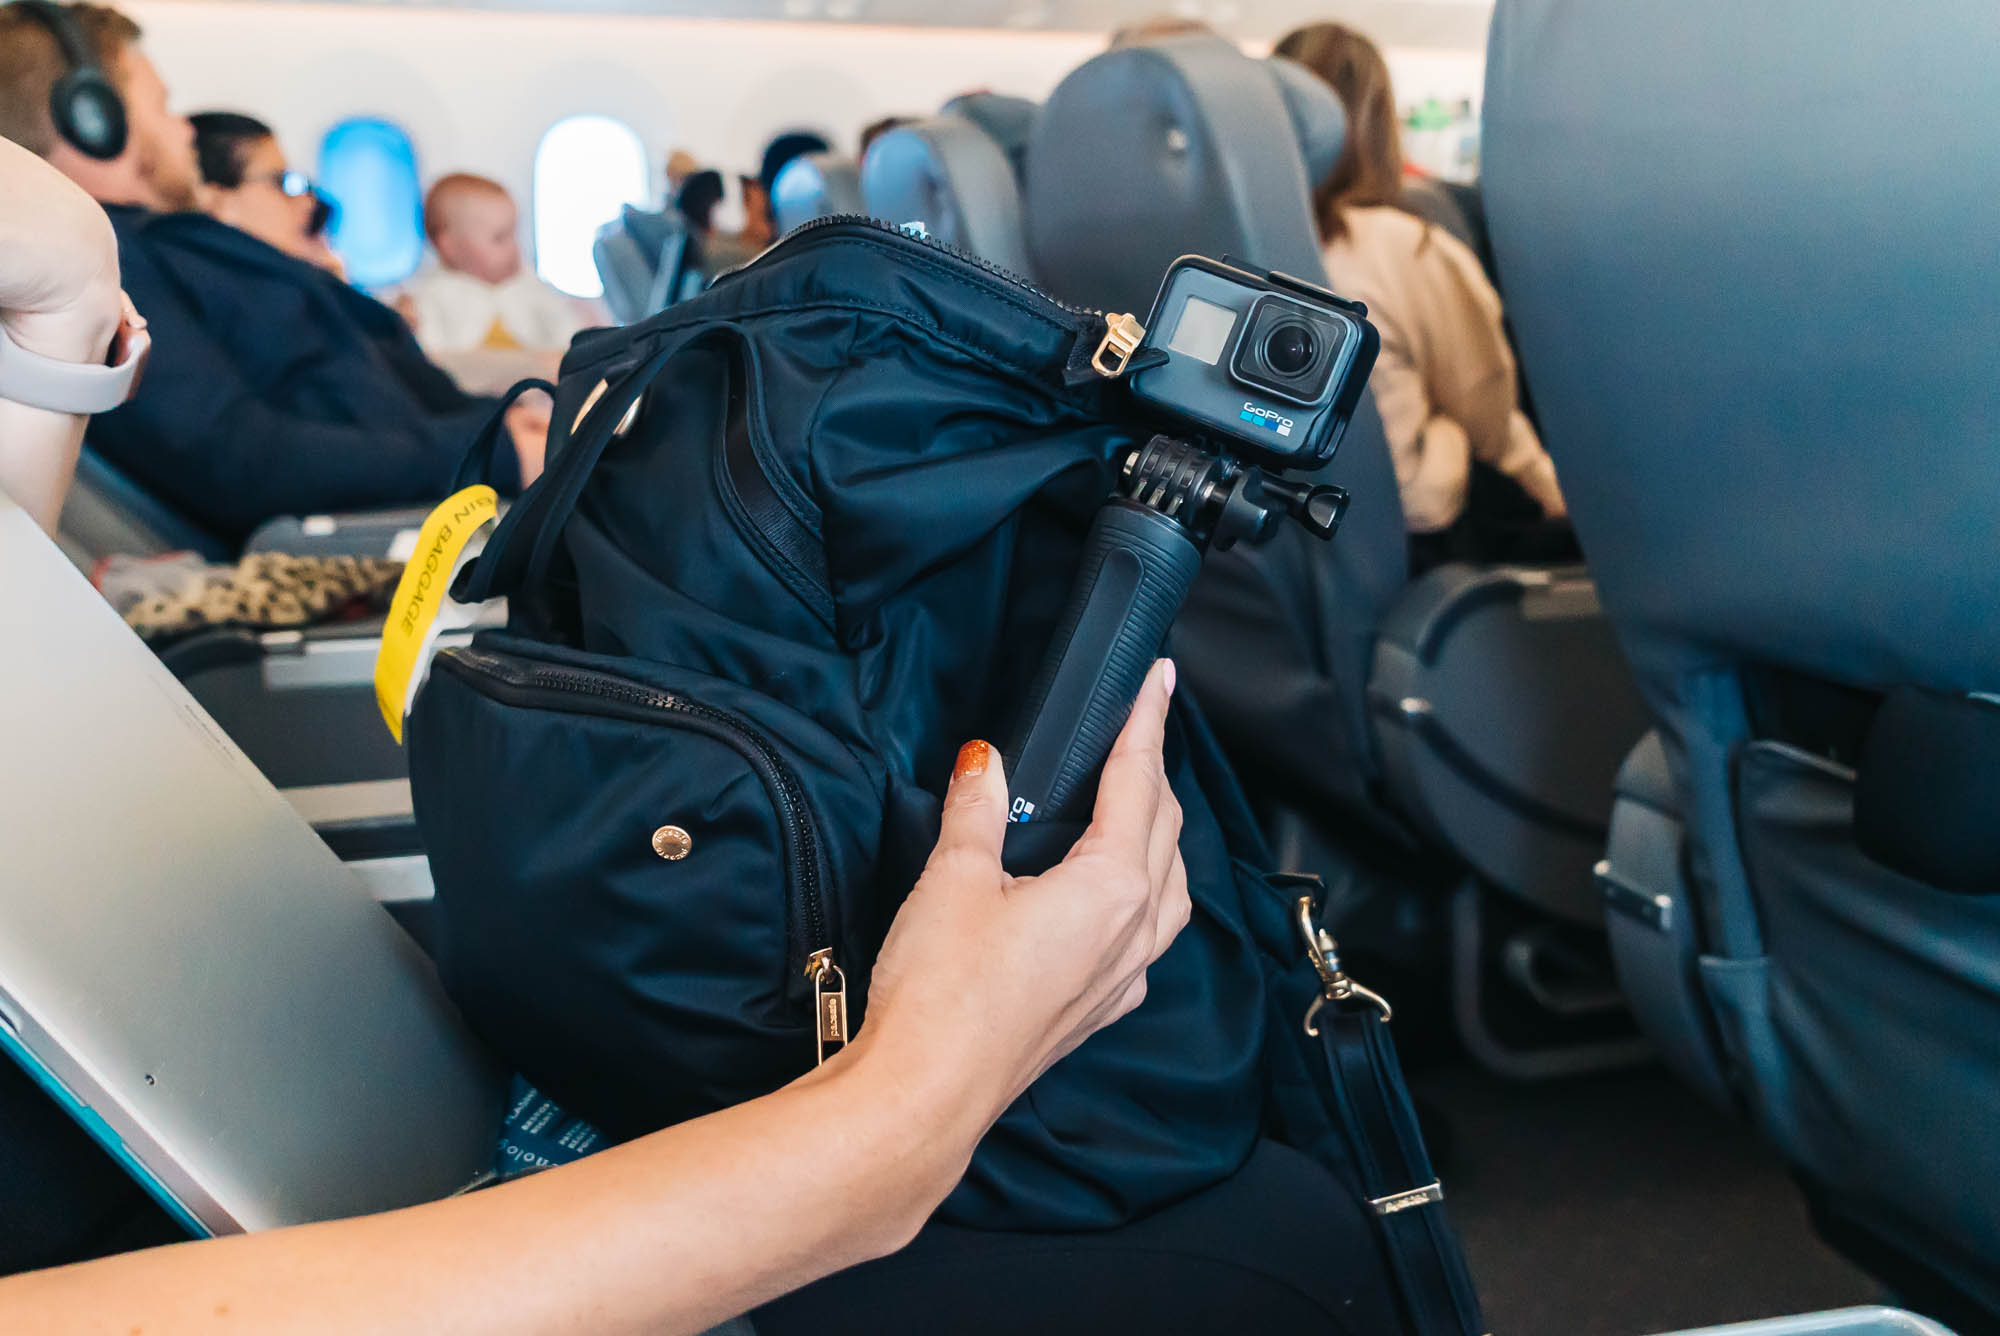 The  Gopro Hero 6  fits conveniently in the Pacsafe side pocket